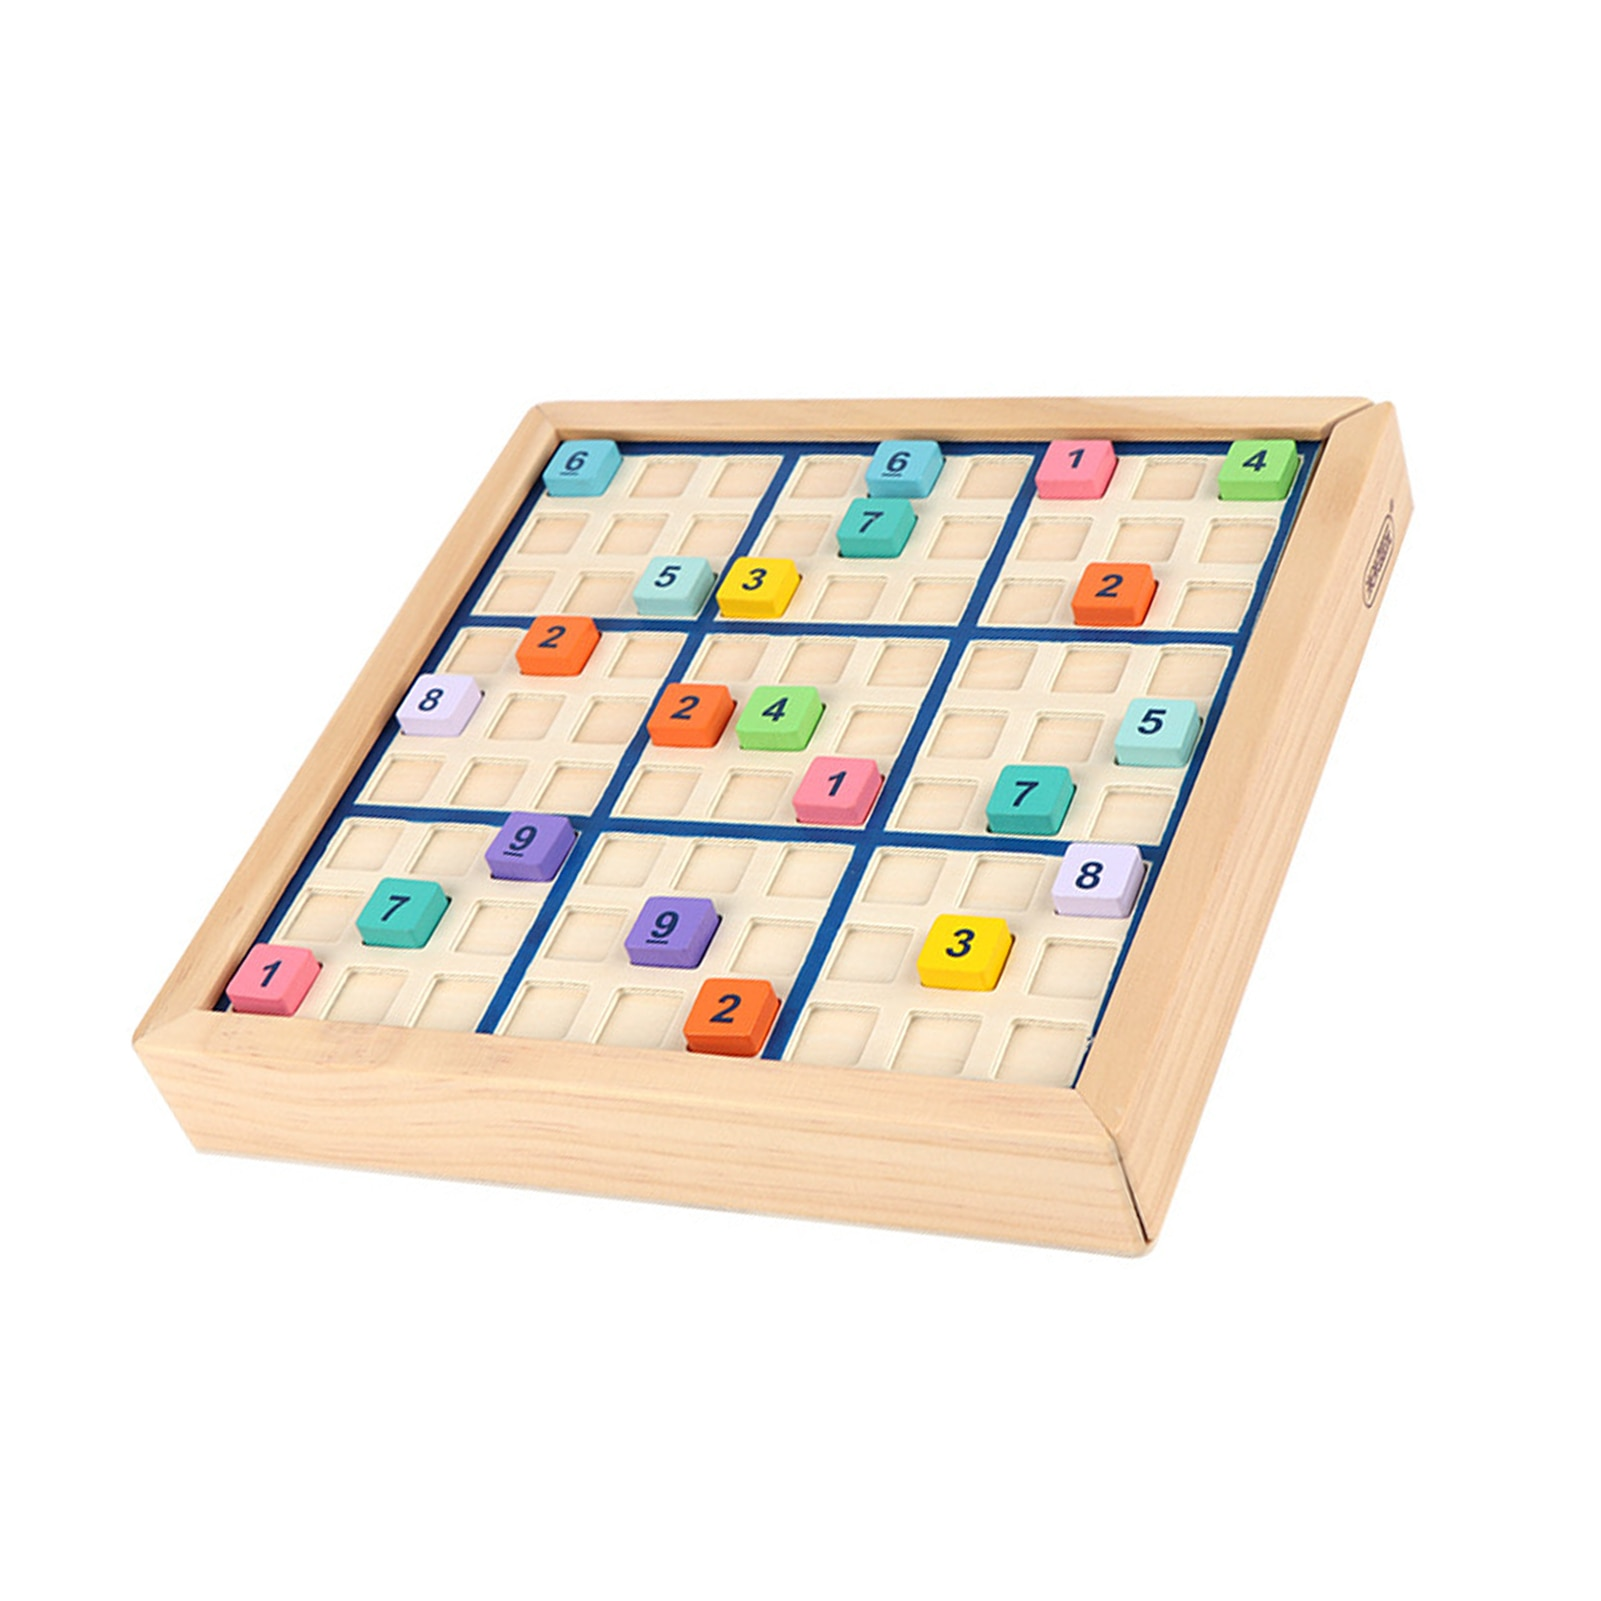 Sudoku Toy Educational Intelligent Wooden Number Board Game Toys For Children Learning Sudoku Chess Beech Gift sudoku notepad easy to medium